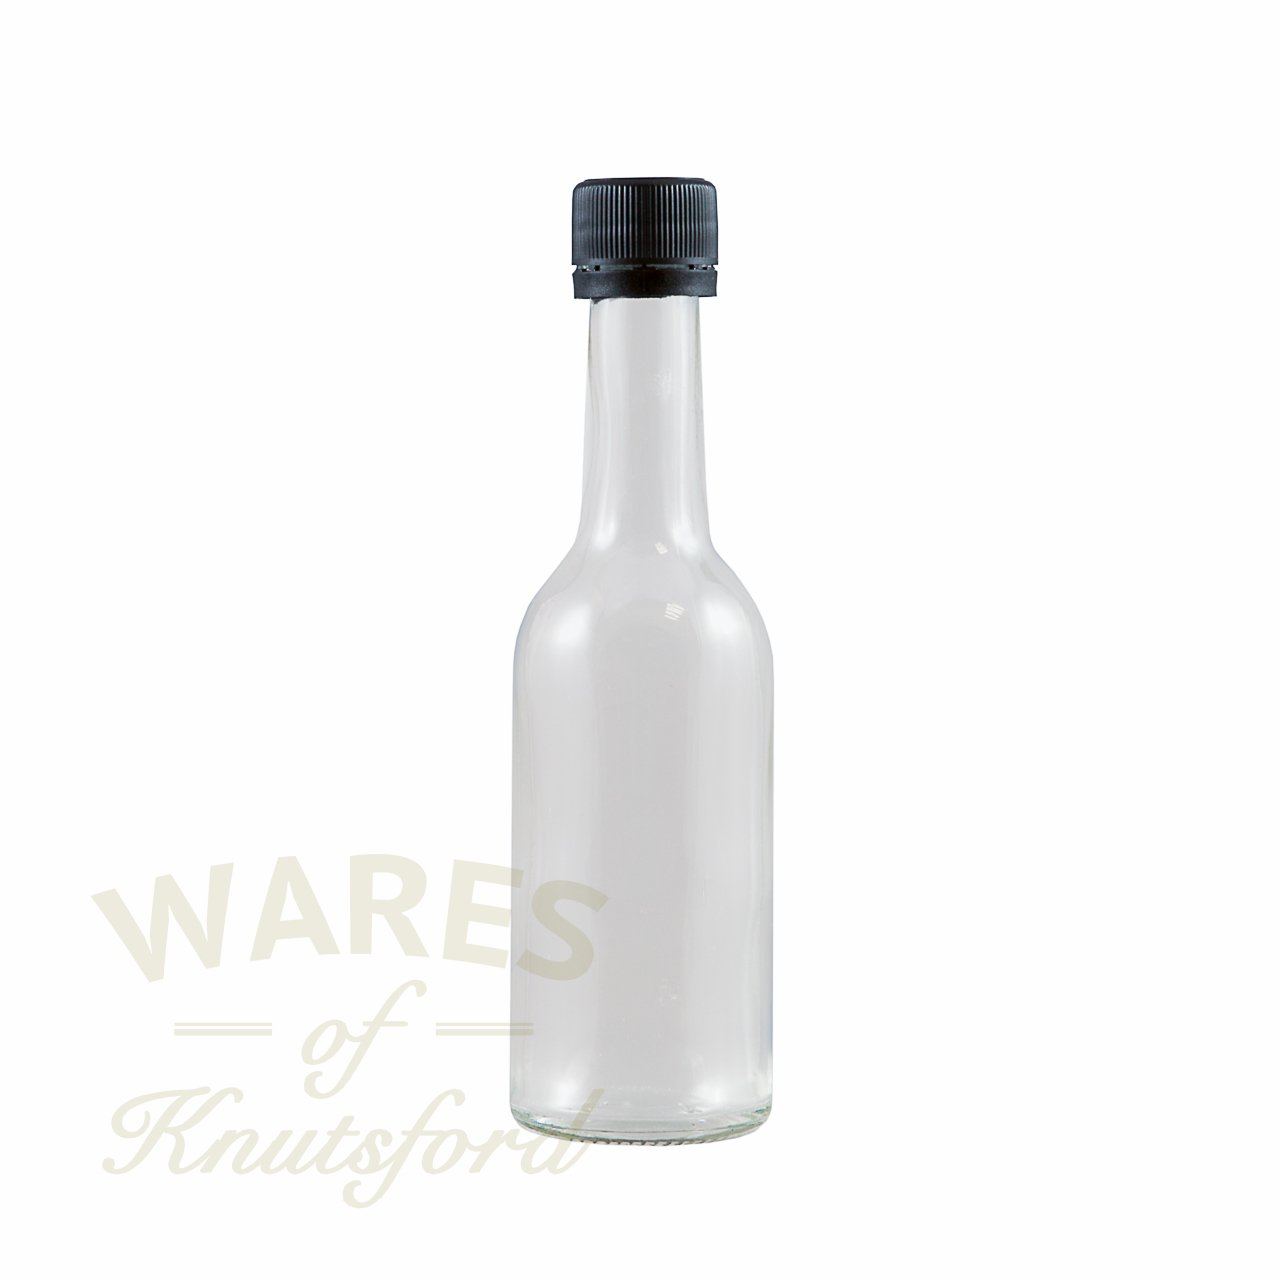 50ml Mini Wine Bottle including caps, Perfect for Wedding Favours (Pack of 12, Black plastic tamper evident epe lined) Wares of Knutsford